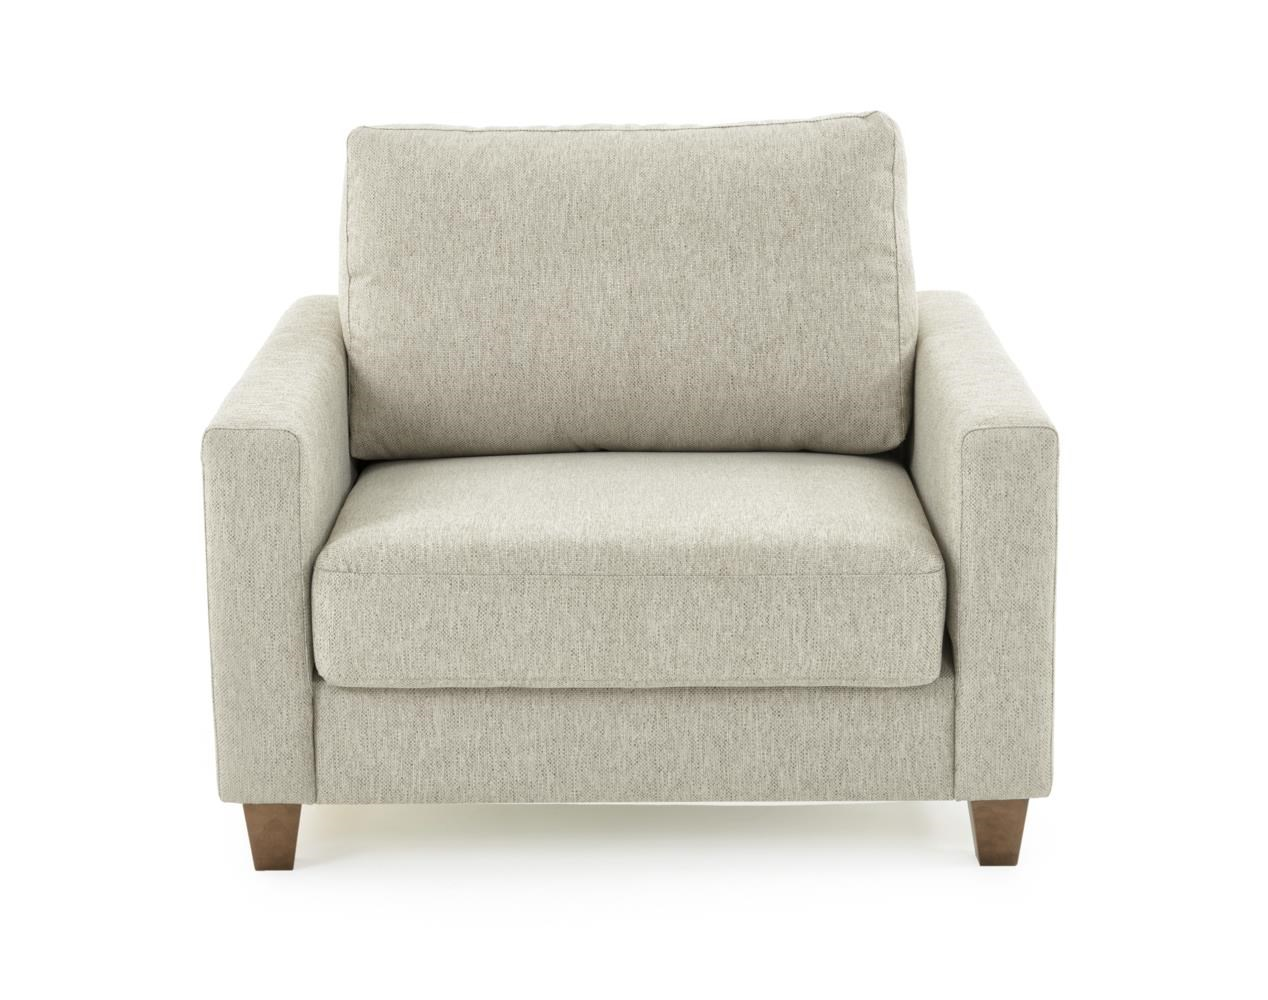 Nico Chair Sleeper Sofa by Luonto at Baer's Furniture